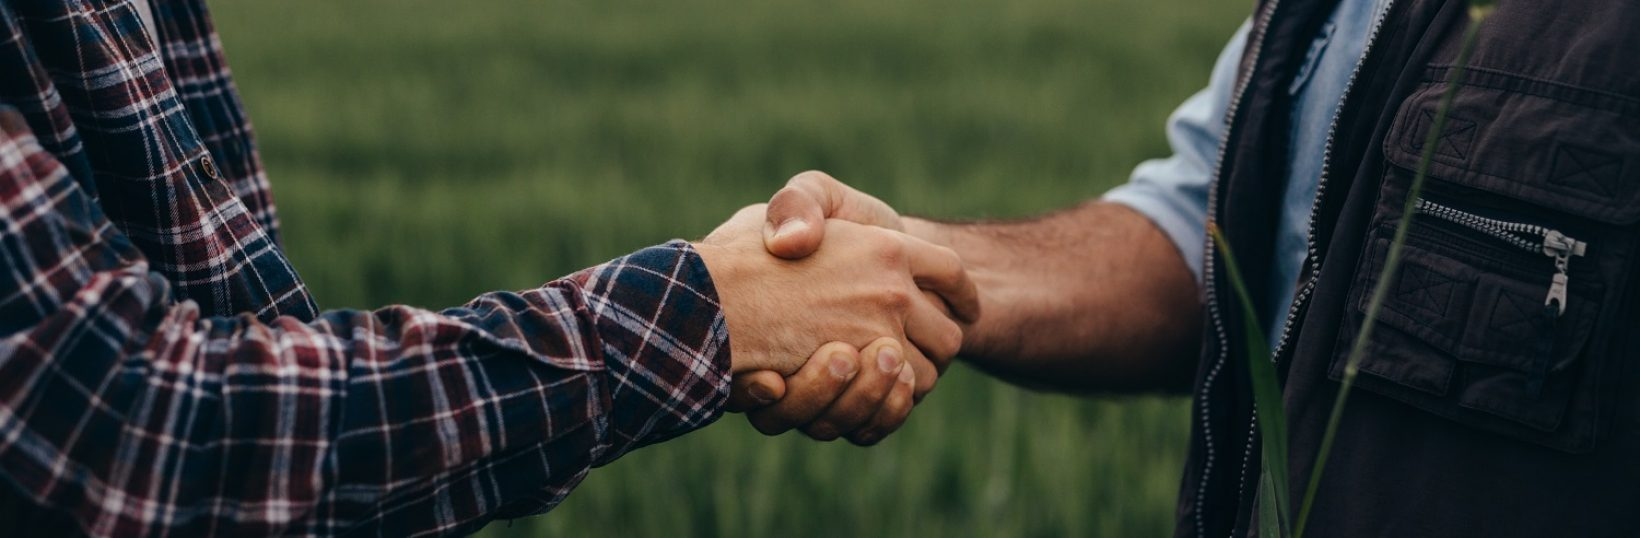 close up of two man handshake on field